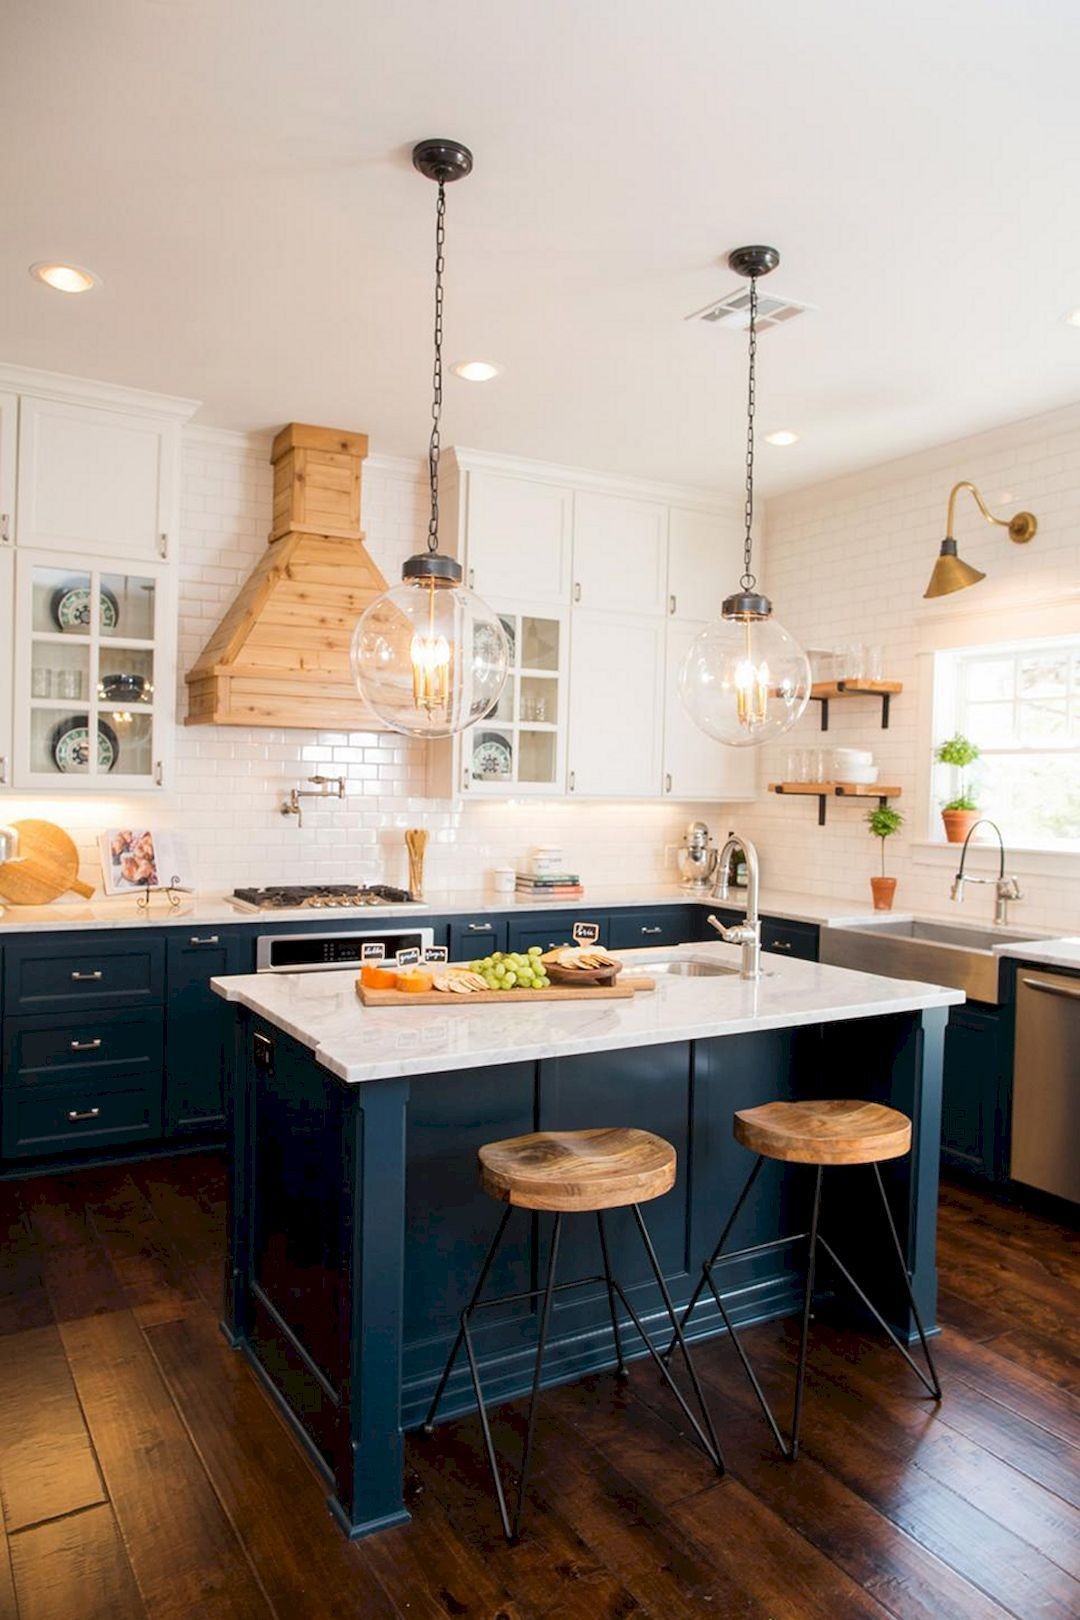 Top 42 Kitchen Design Inspirations From Joanna Gaines Kitchen And